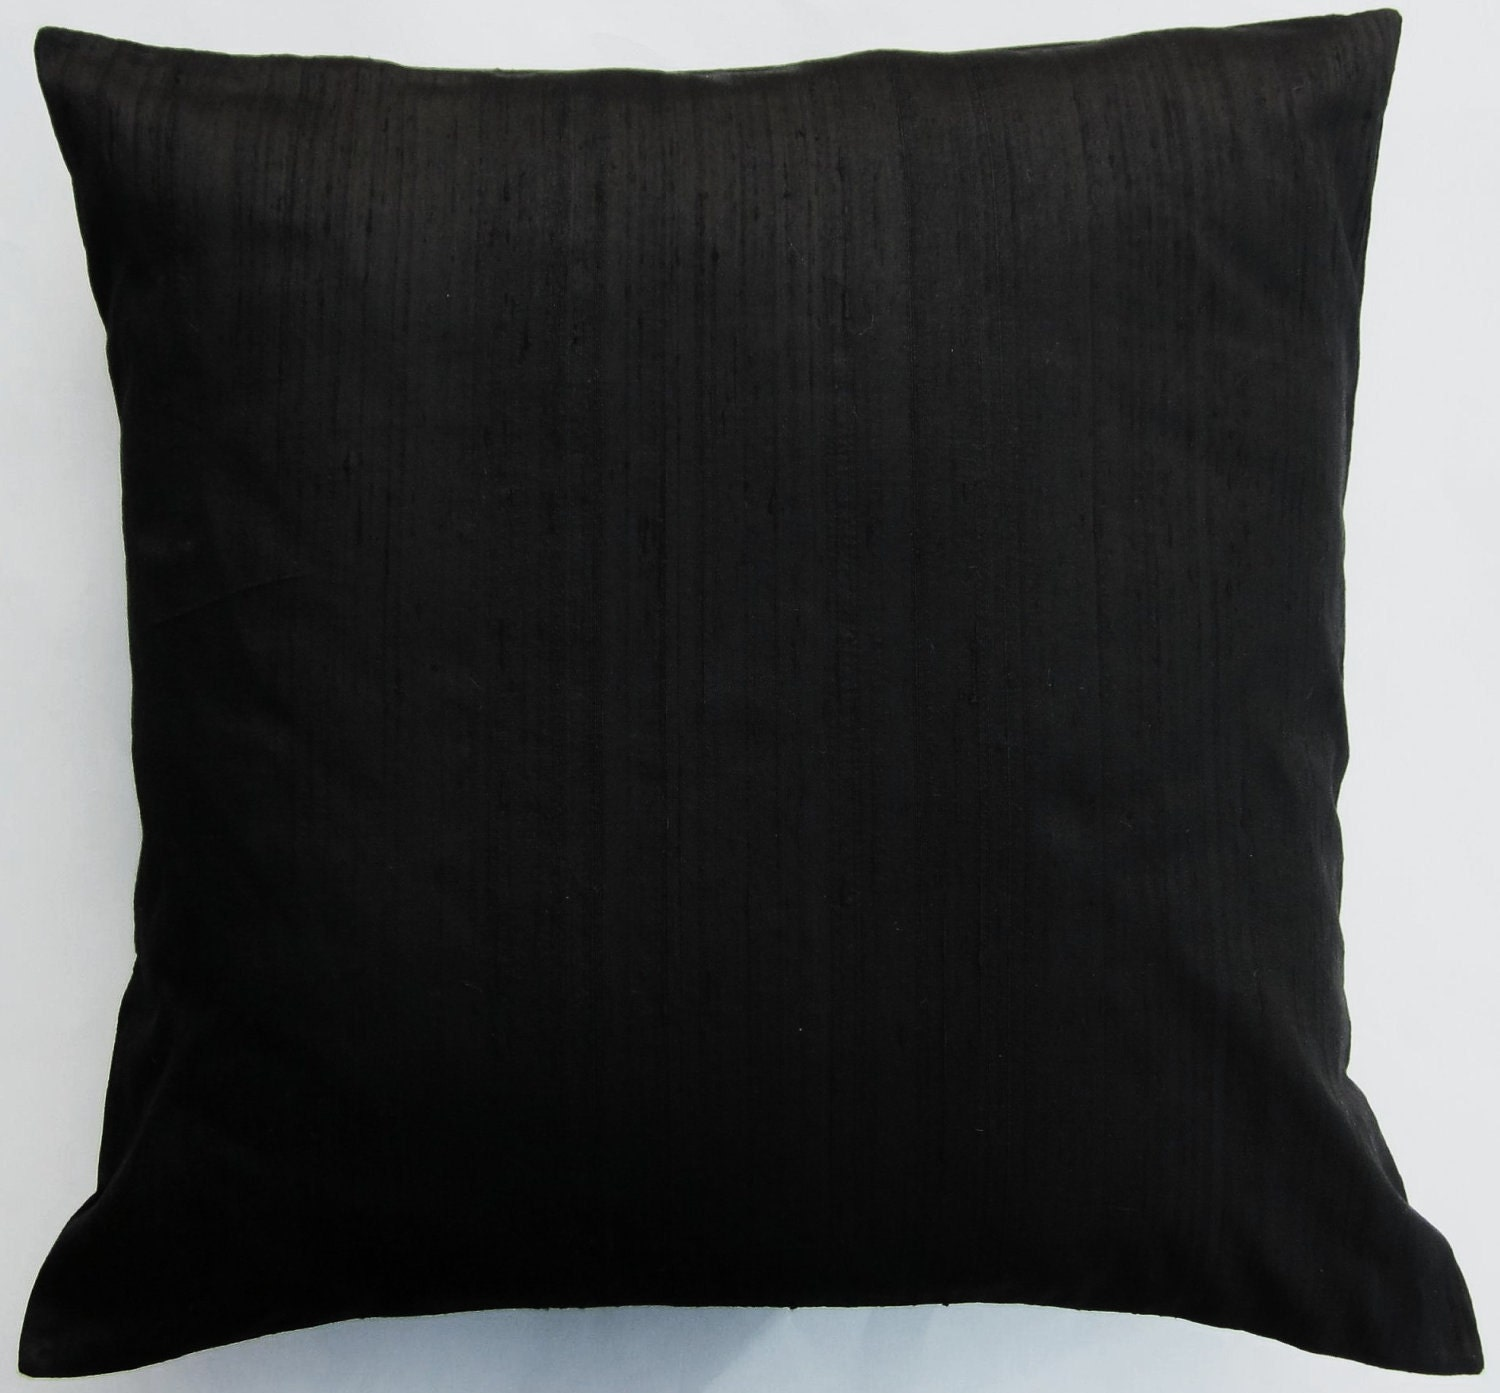 Black Throw Pillow For Bed : Black Pillow Cover Black Silk Throw Pillow Cover by sassypillows